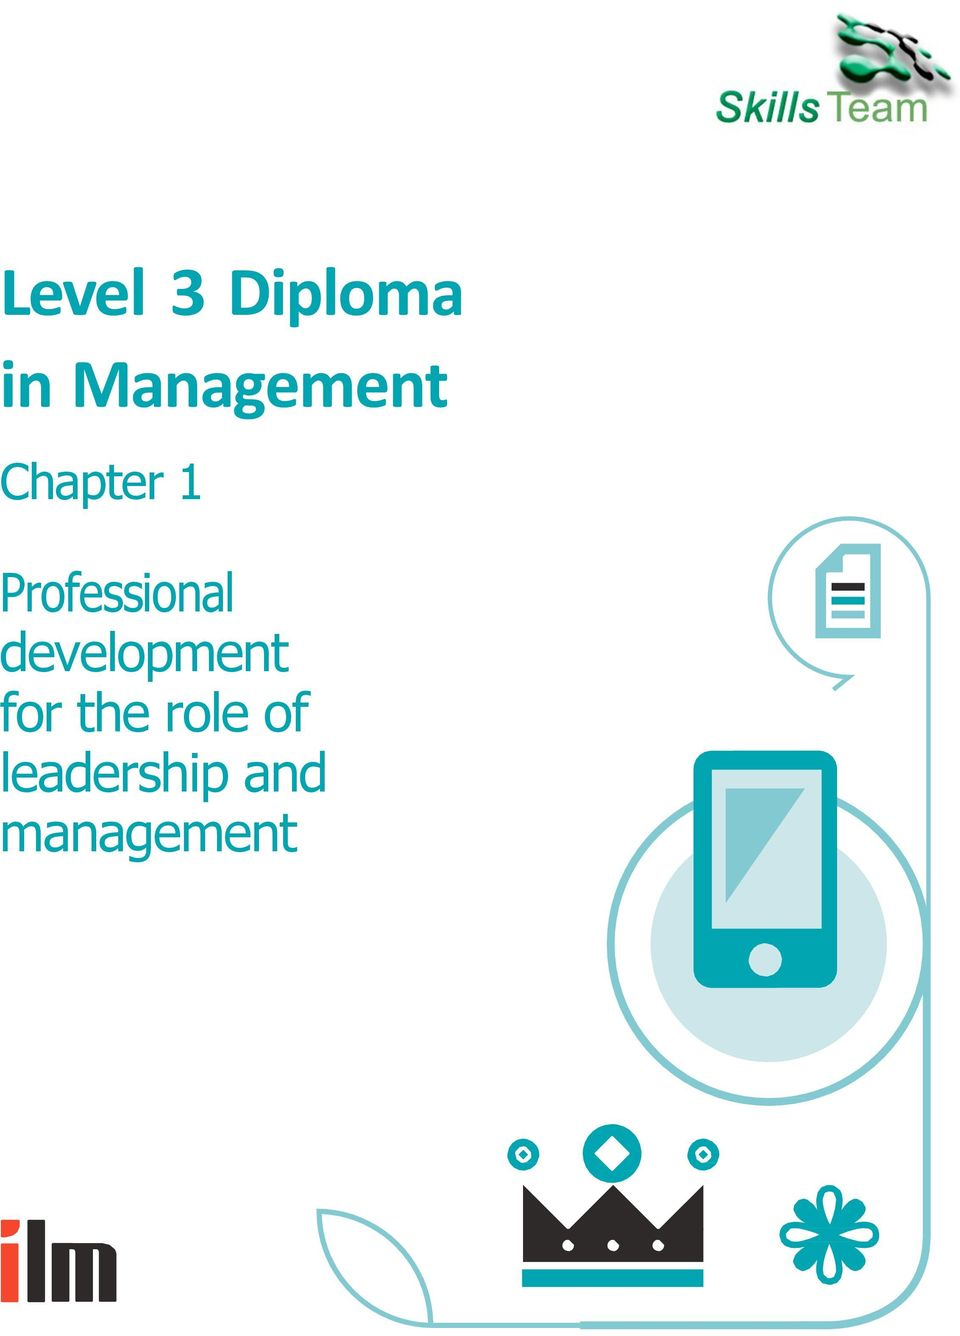 level 5 leadership and management essays Open document below is an essay on level 5 diploma leadership and management from anti essays, your source for research papers, essays, and term paper examples.